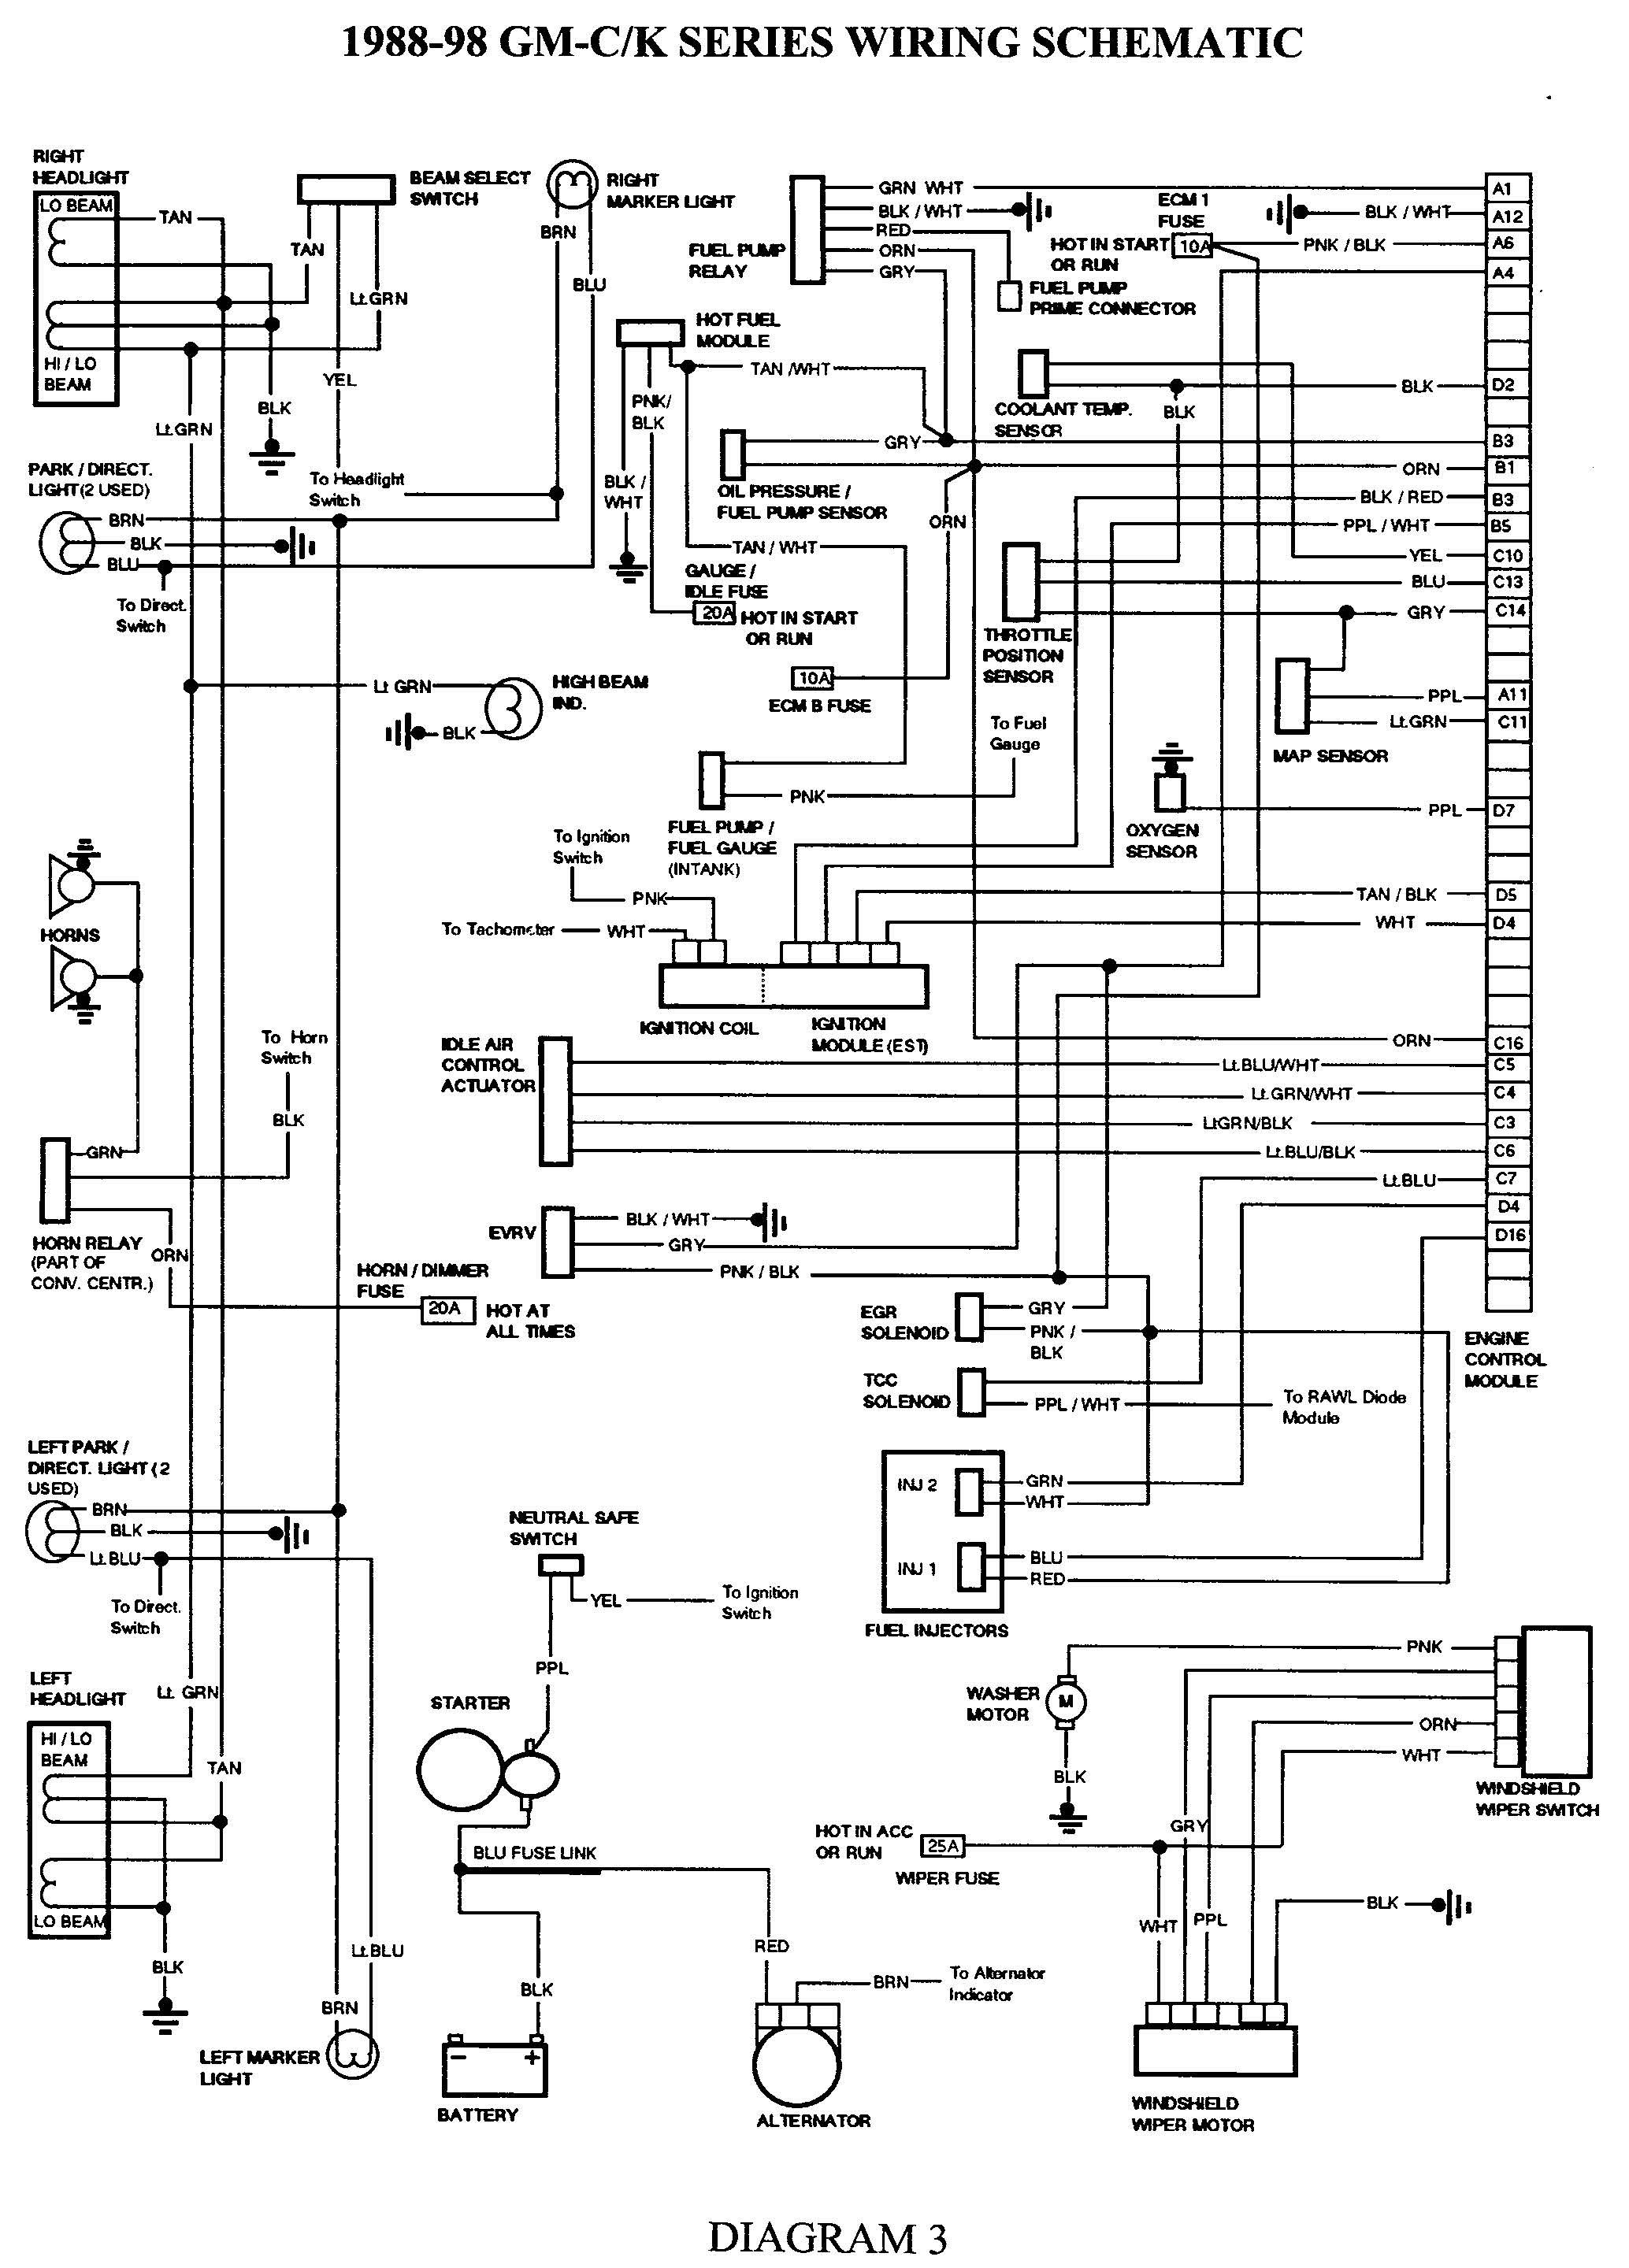 1986 flht wiring diagram 1986 chevrolet c10 5.7 v8 engine wiring diagram ... 1986 chevy wiring diagram #4